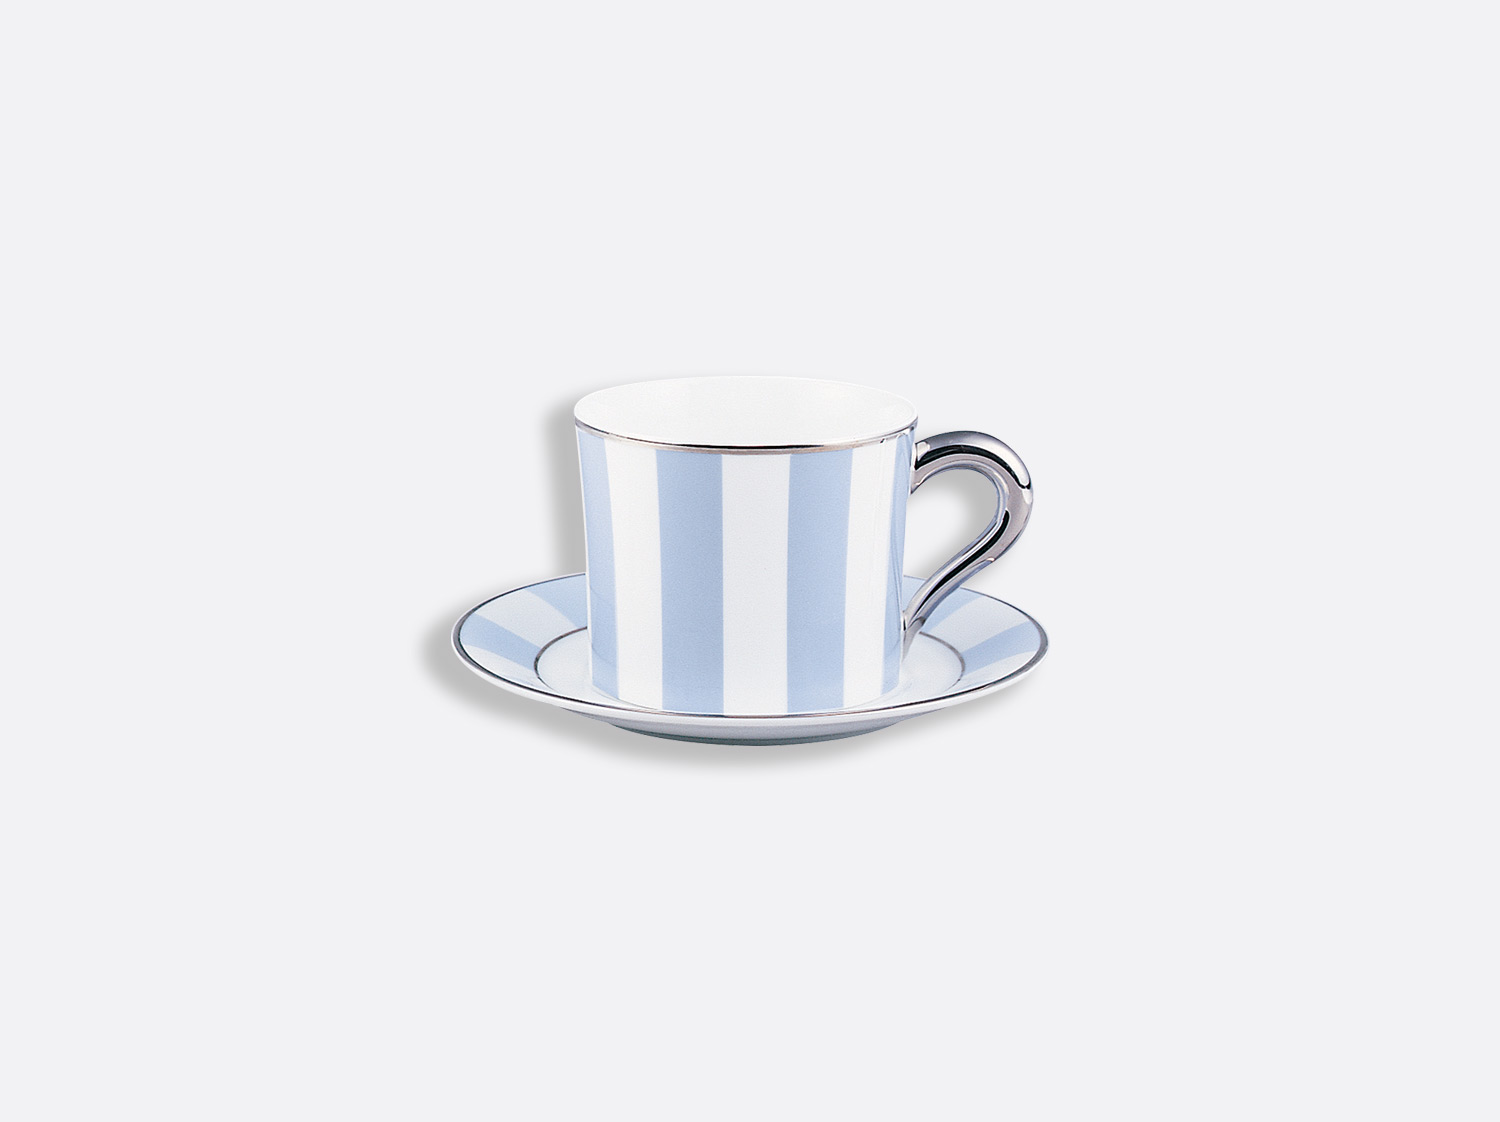 China Tea cup and saucer 20 cl of the collection Galerie royale blue wallis | Bernardaud